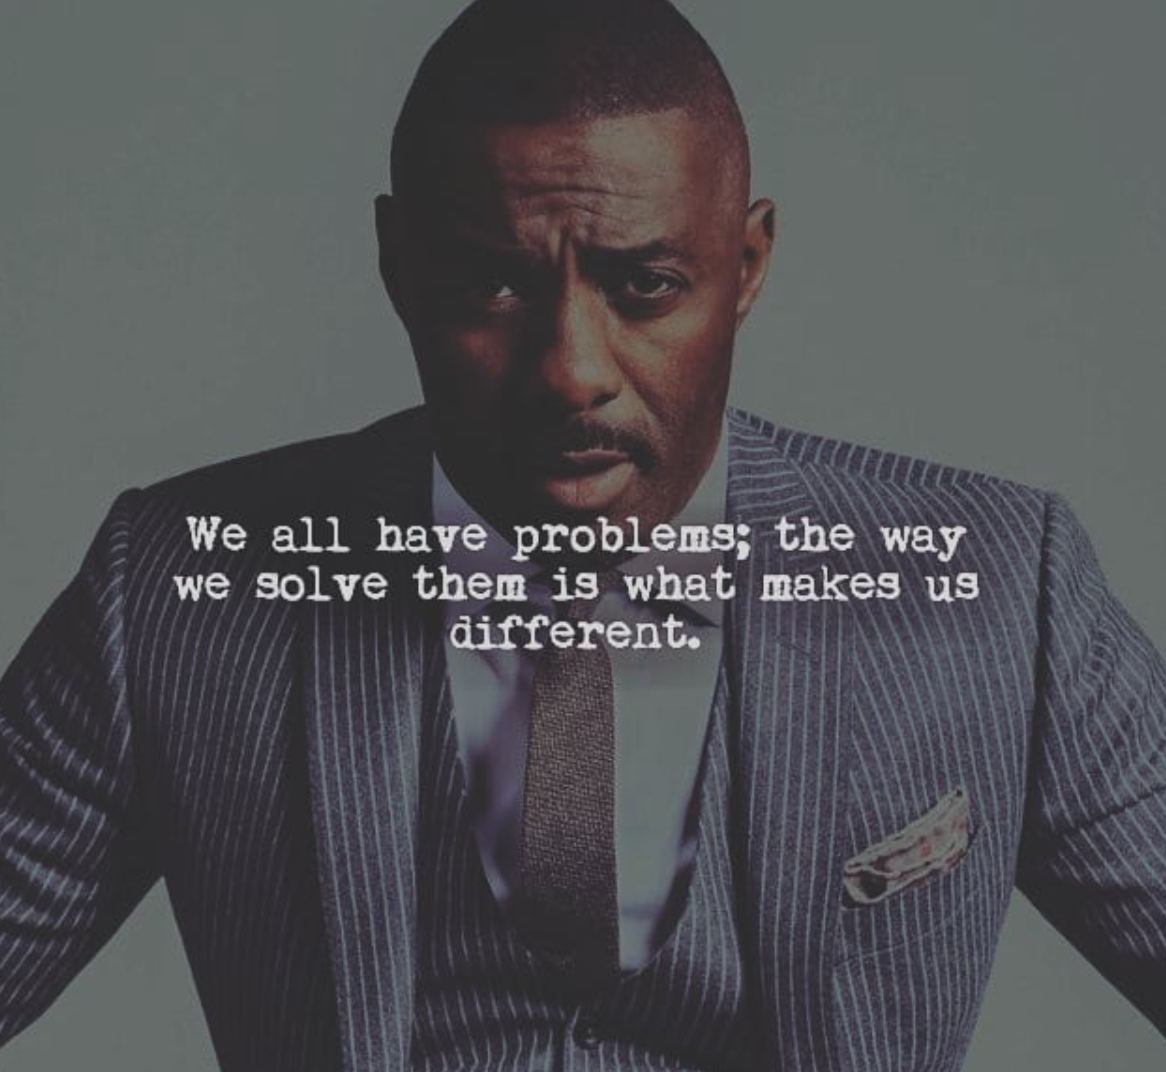 [Image] We all have problems. The way we solve them is what makes us different.